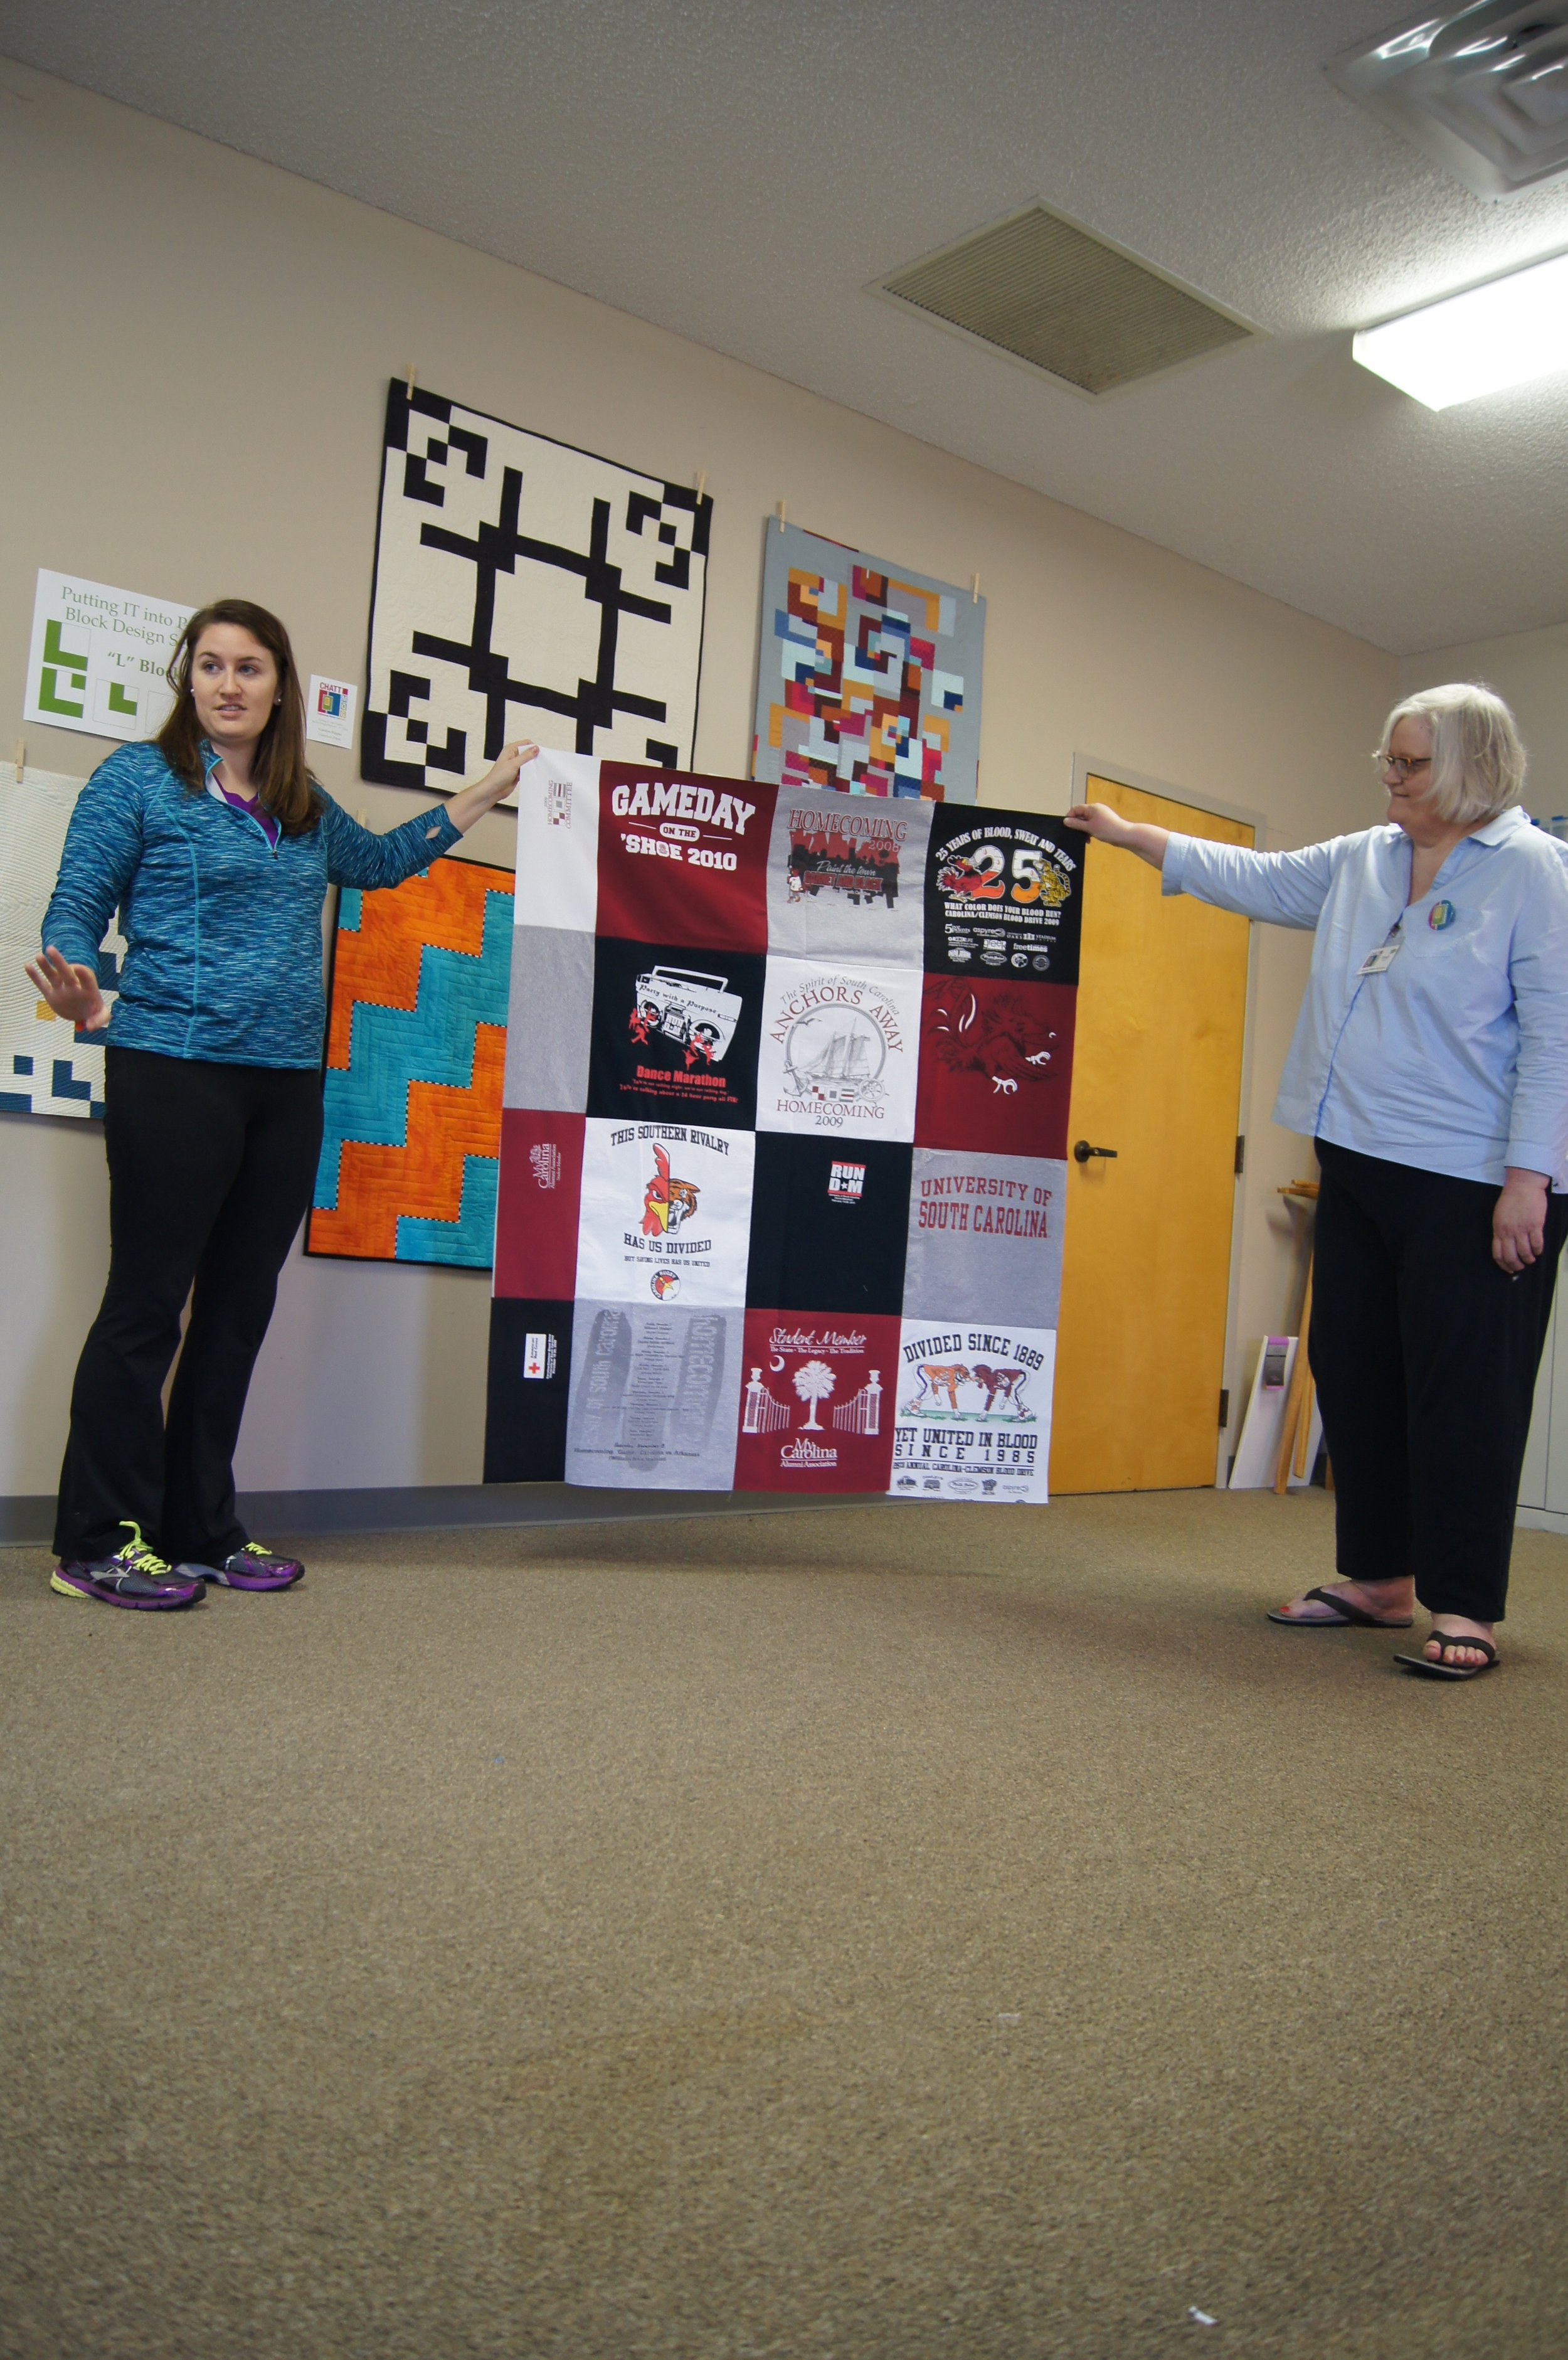 T-shirt quilt by Ashley Brown (left)